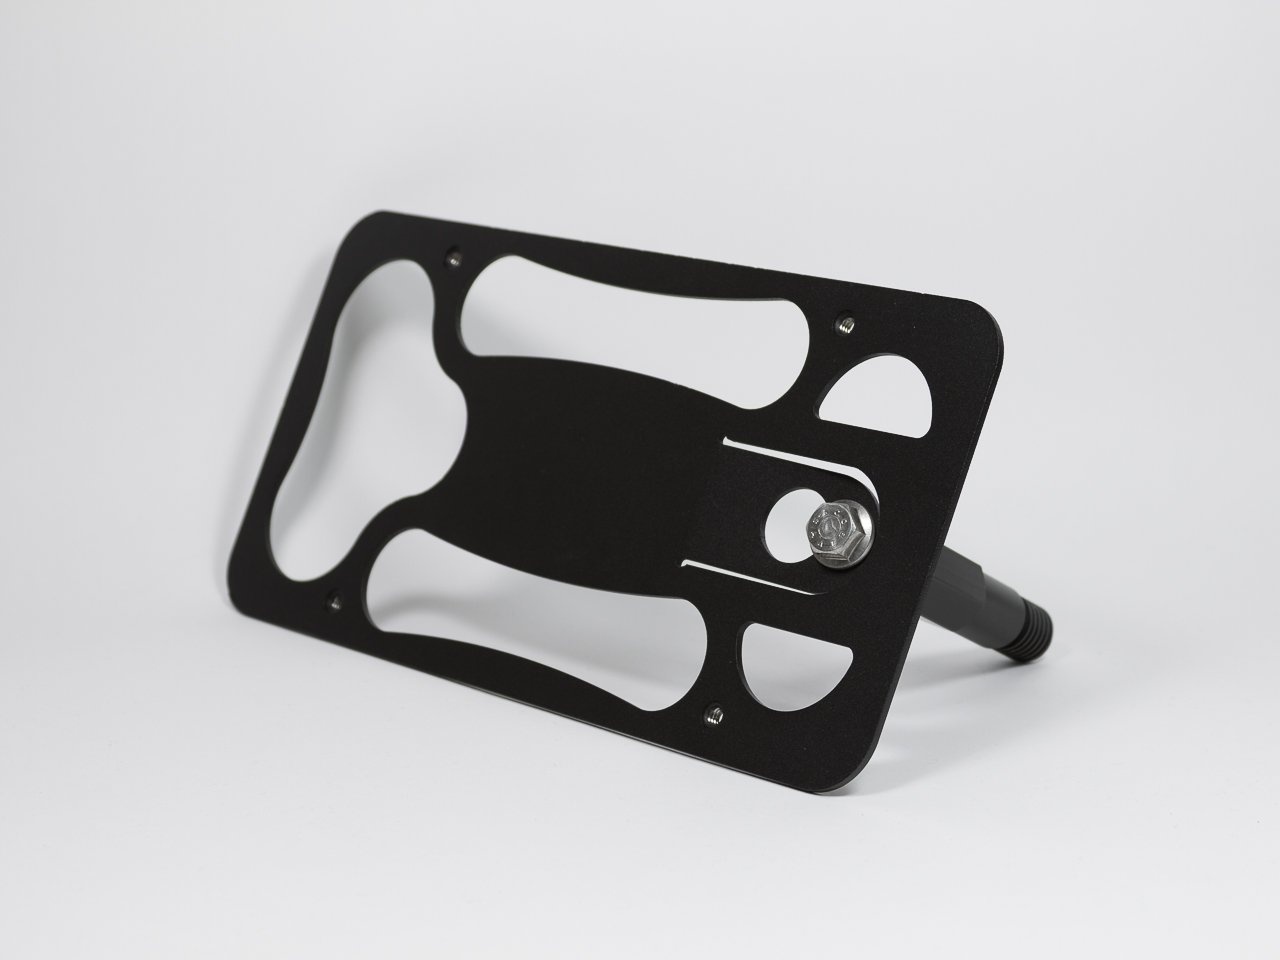 Made in USA Made of Stainless Steel /& Aluminum Installs in Seconds CravenSpeed The Platypus License Plate Mount for Lexus GS No Drilling 2013-2019